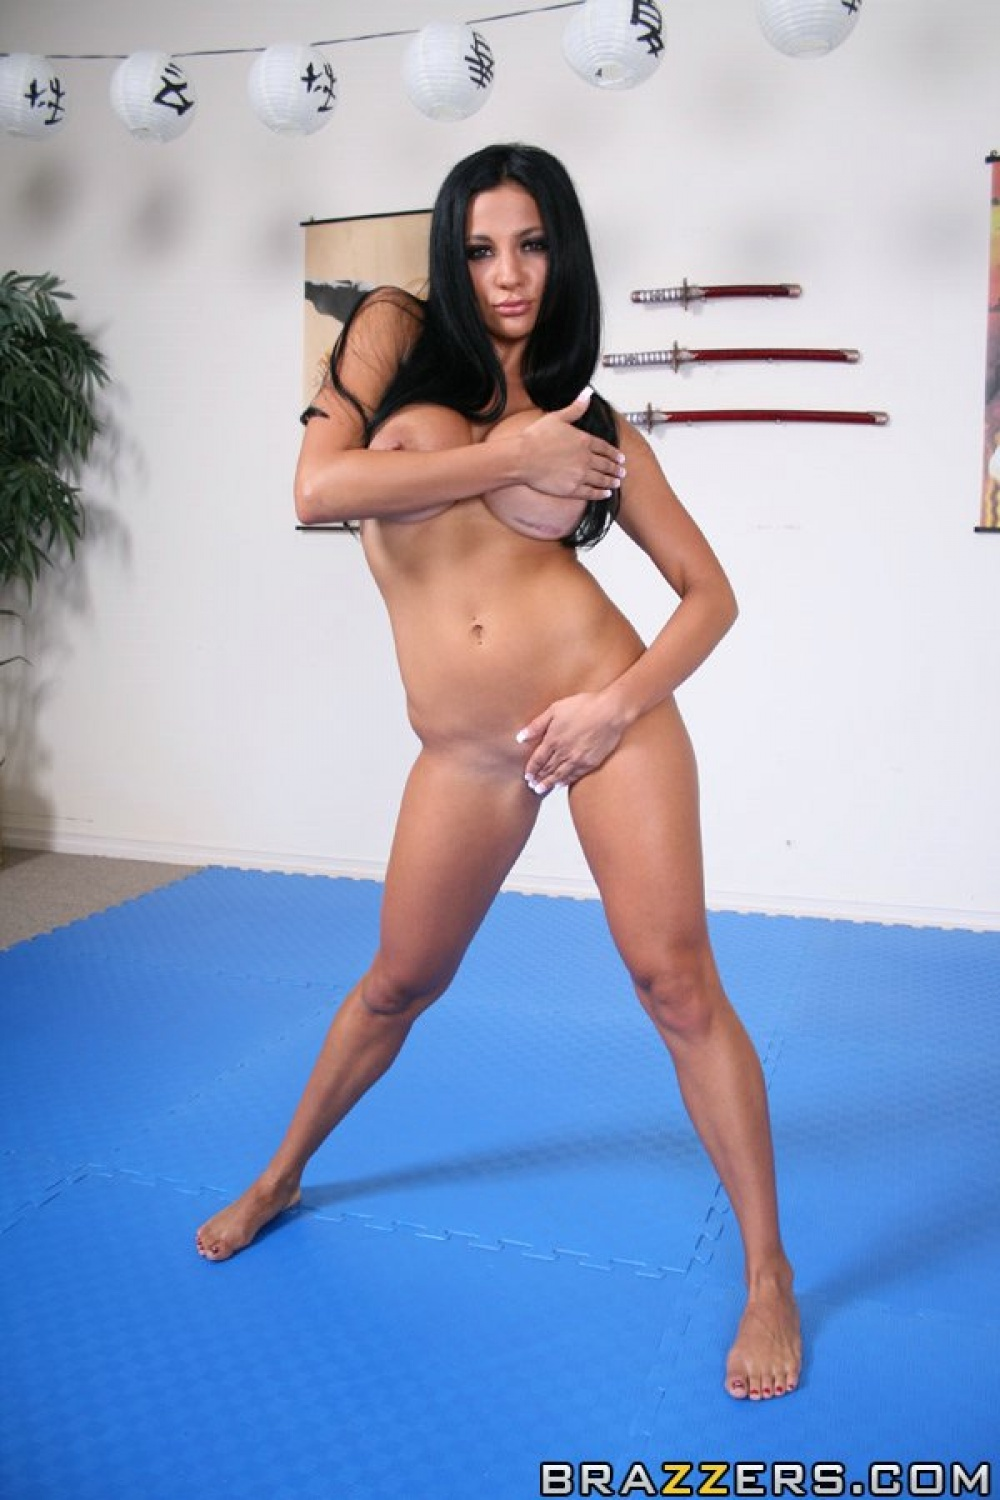 Excited too Audrey bitoni big tits in sports join. All